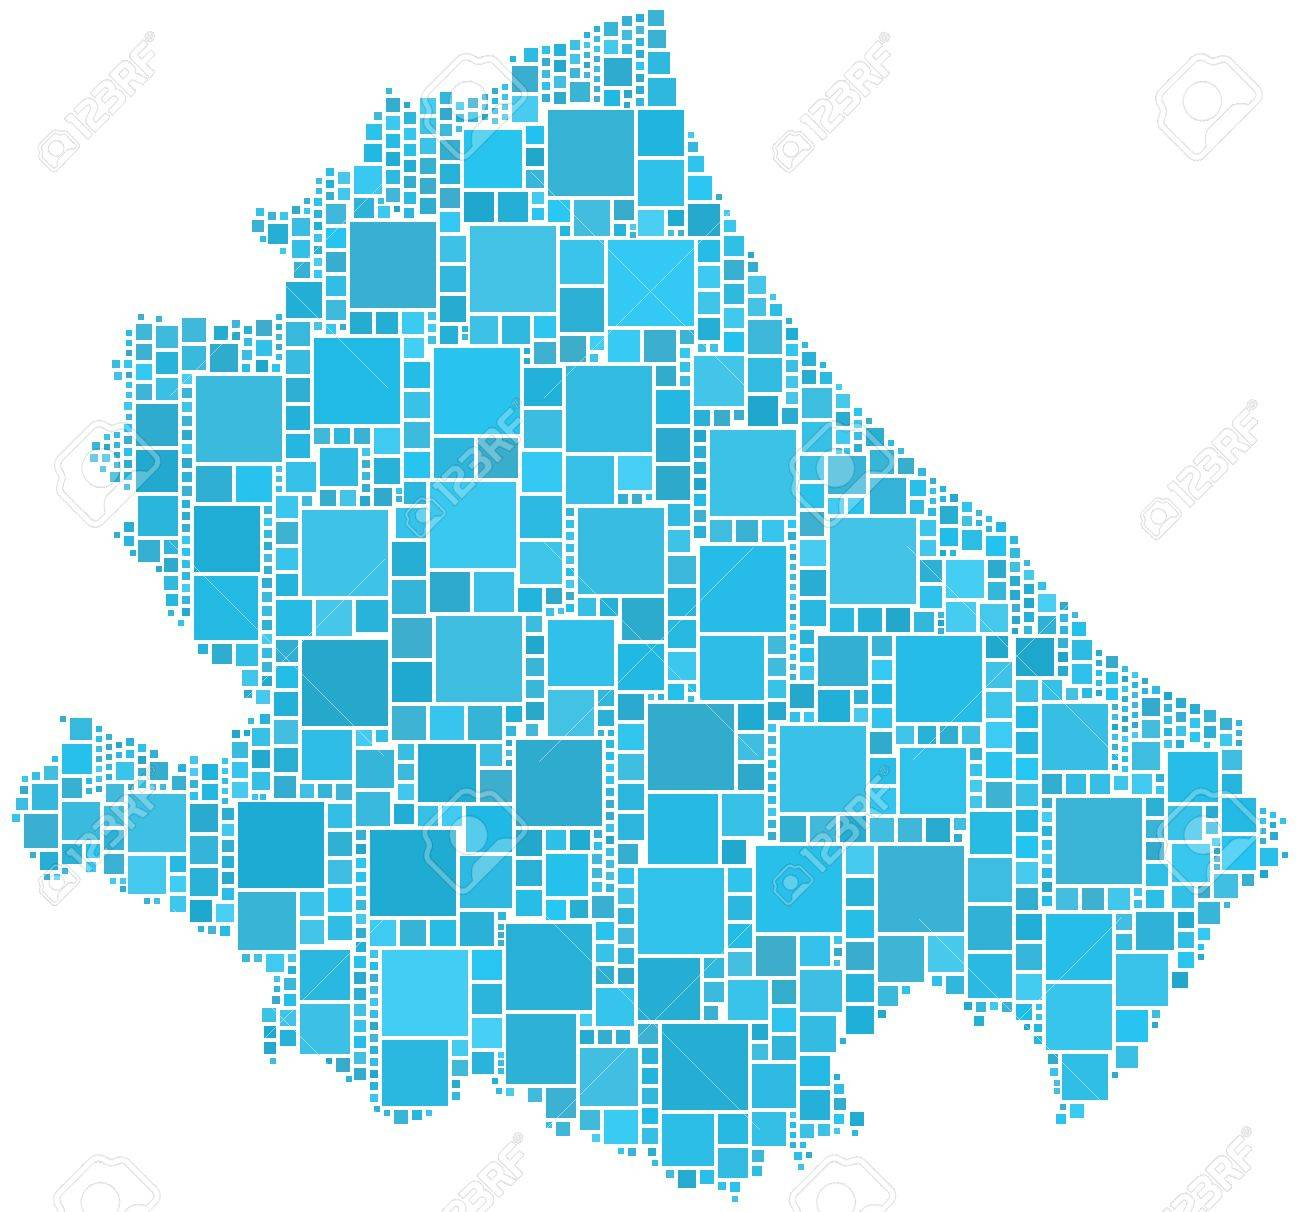 Picture of: Map Of Abruzzo Italy Royalty Free Cliparts Vectors And Stock Illustration Image 6200110